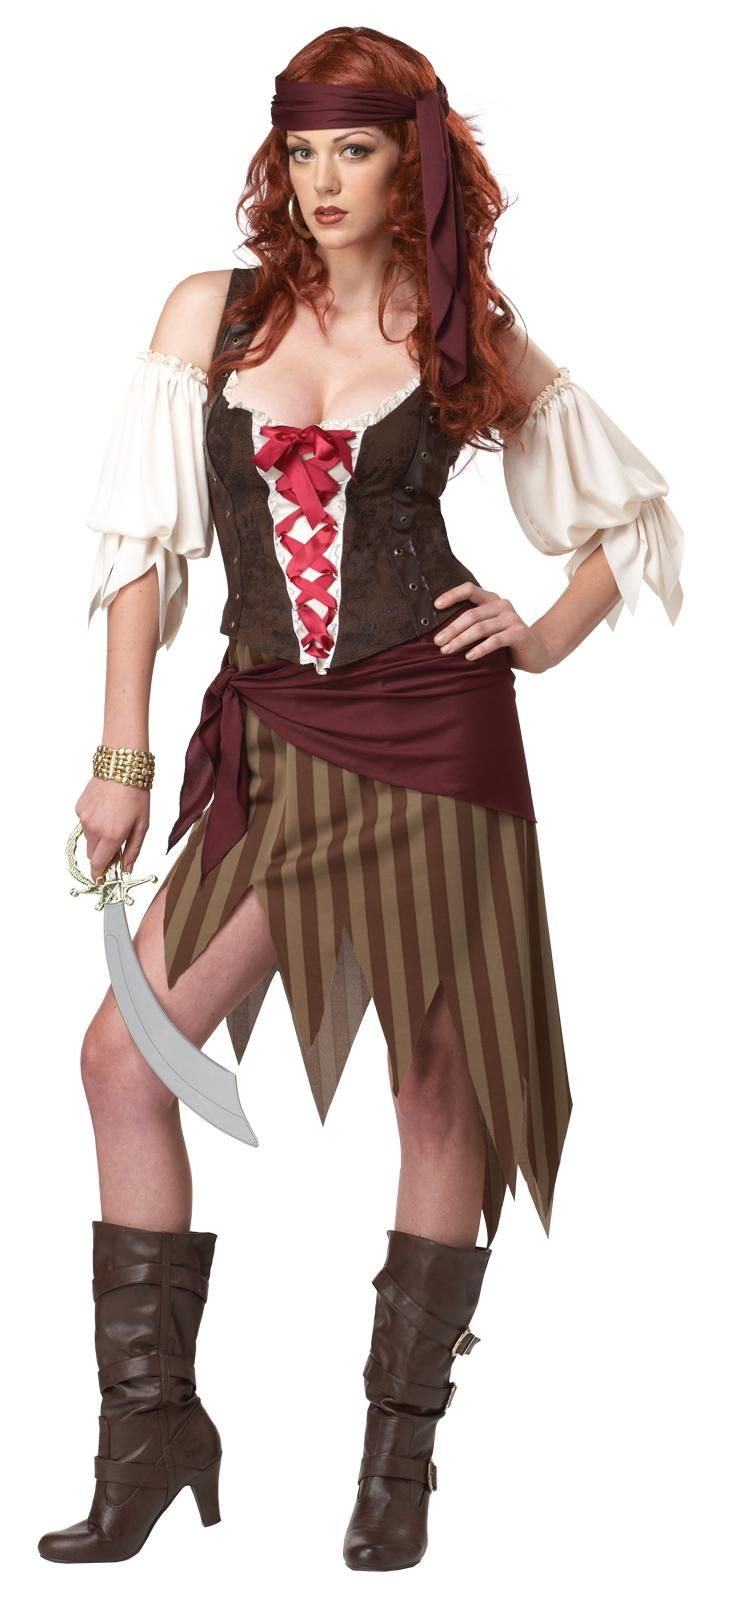 buccaneer beauty pirate adult costume includes top sleeves skirt hip wrap and head tie - Pirate Halloween Costume For Women